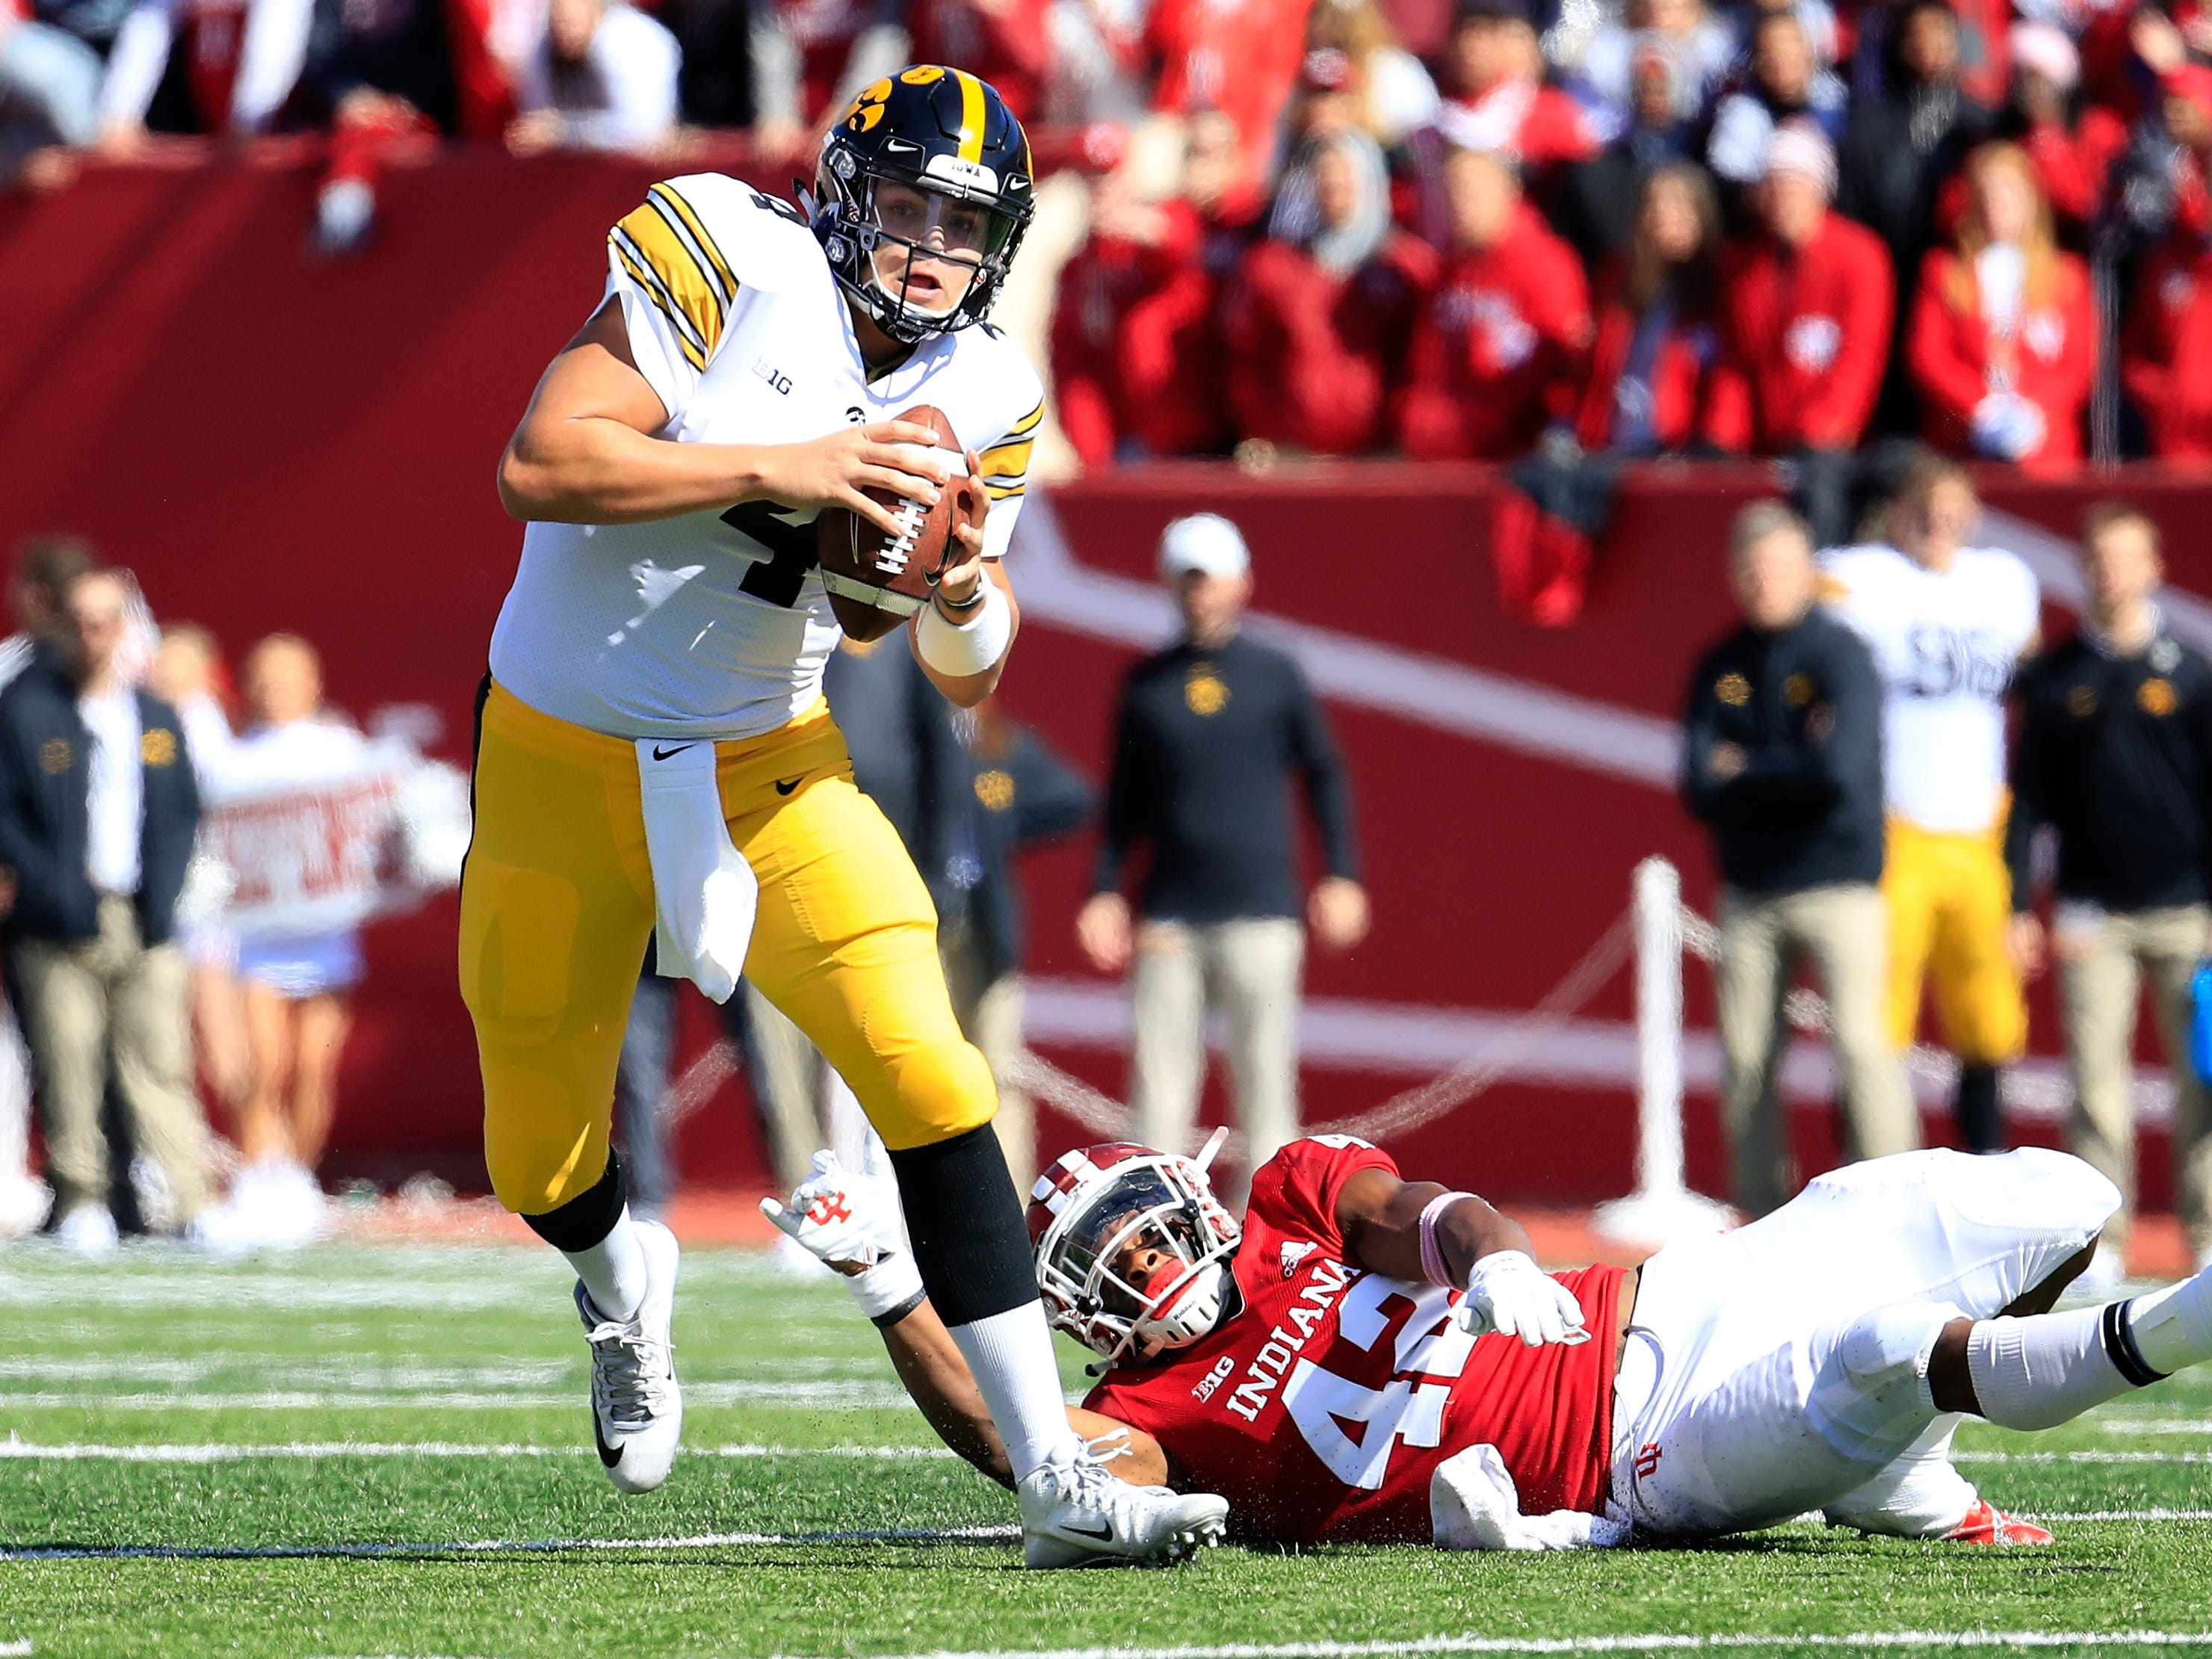 Nate Stanley scrambles on his way to throwing a spectacular touchdown pass to Nick Easley during Saturday's 42-16 win at Indiana.